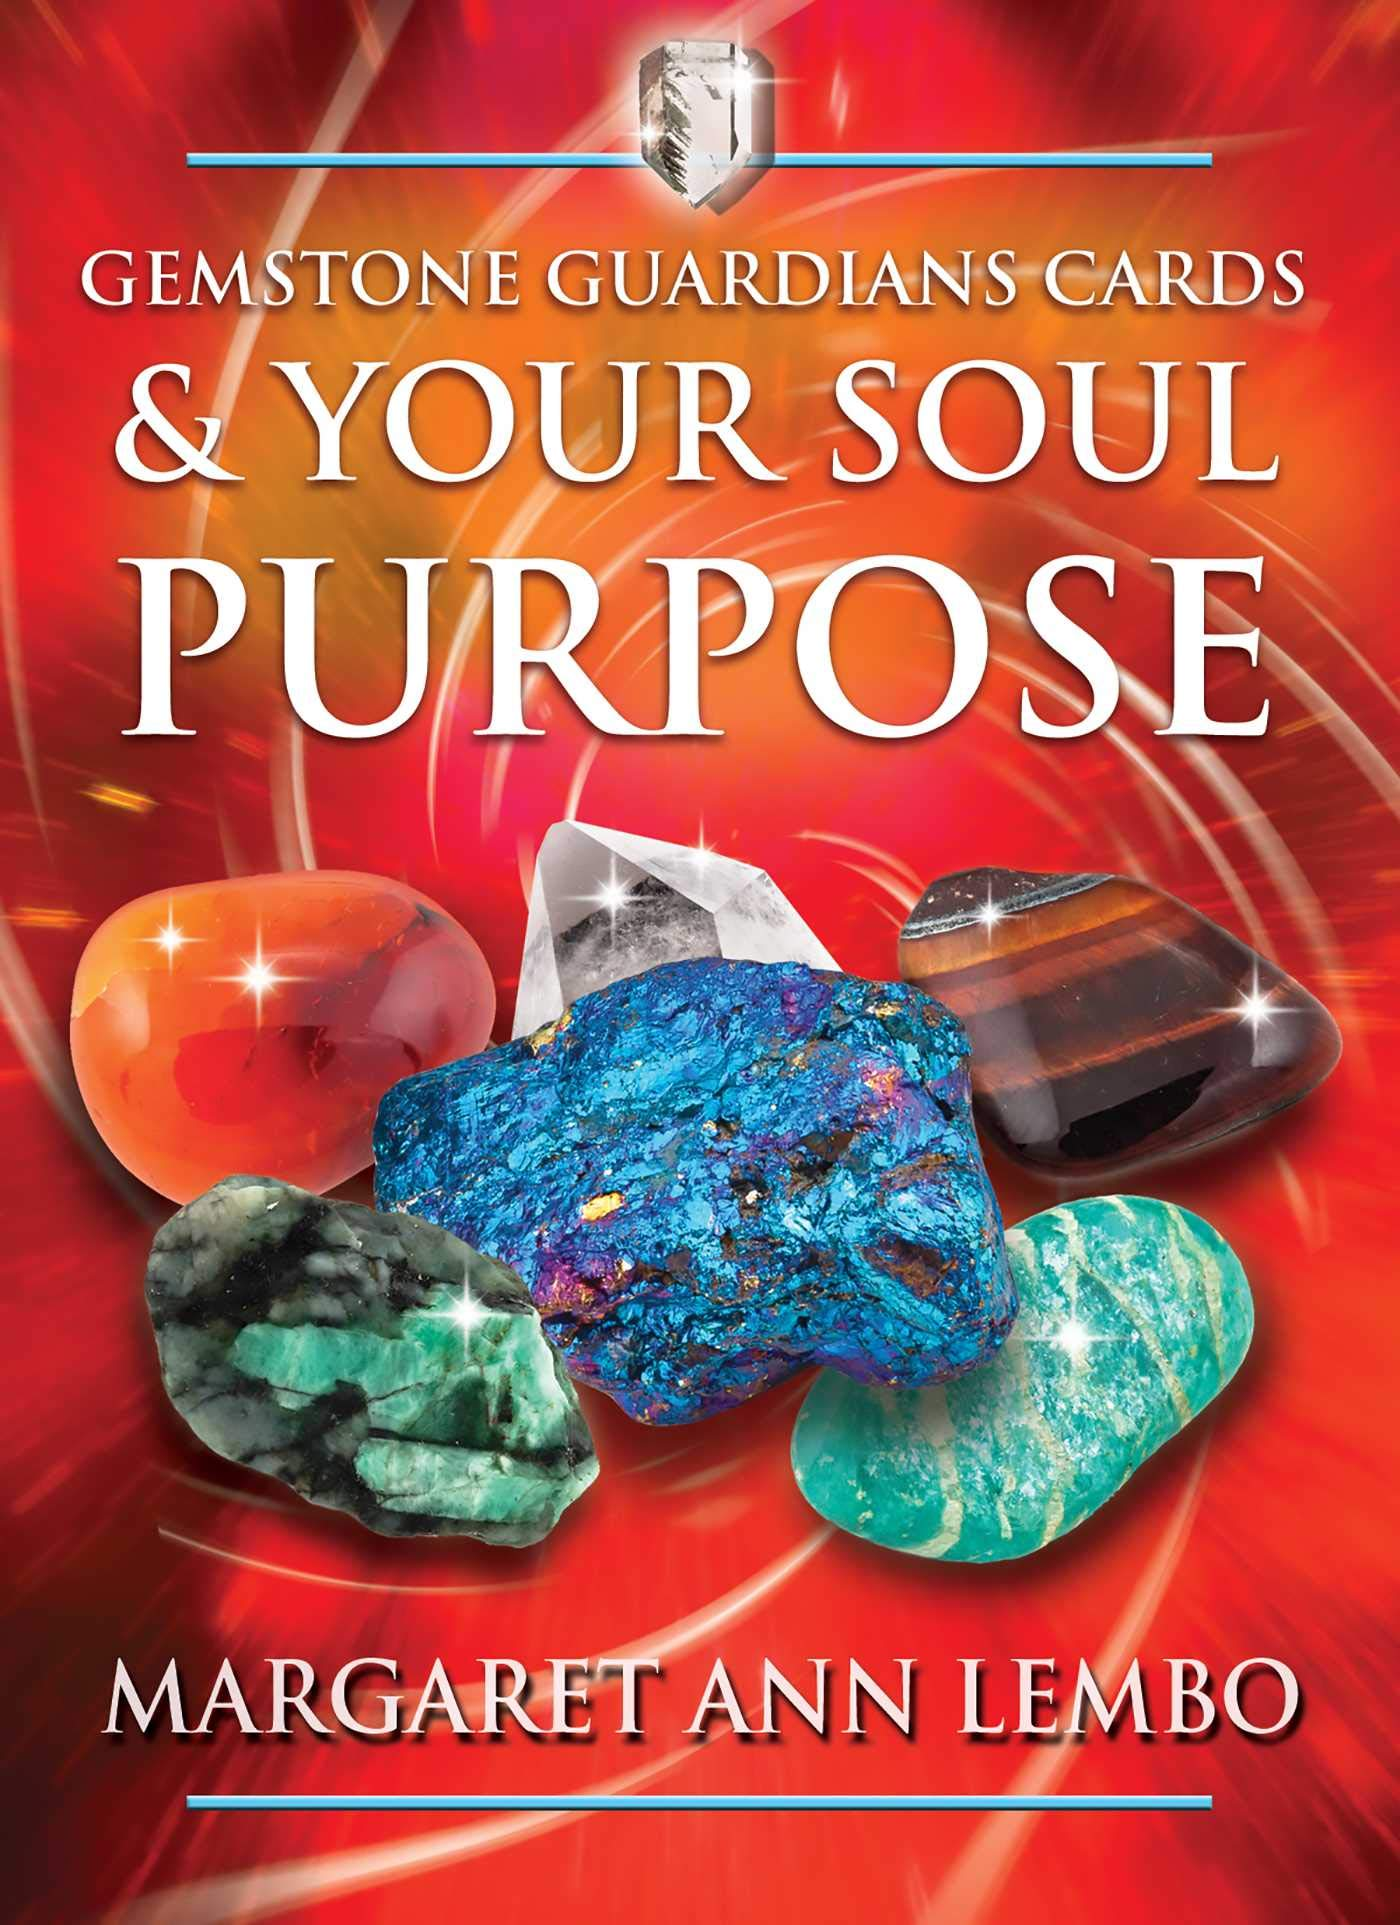 Gemstone Guardians Cards & Your Soul Purpose